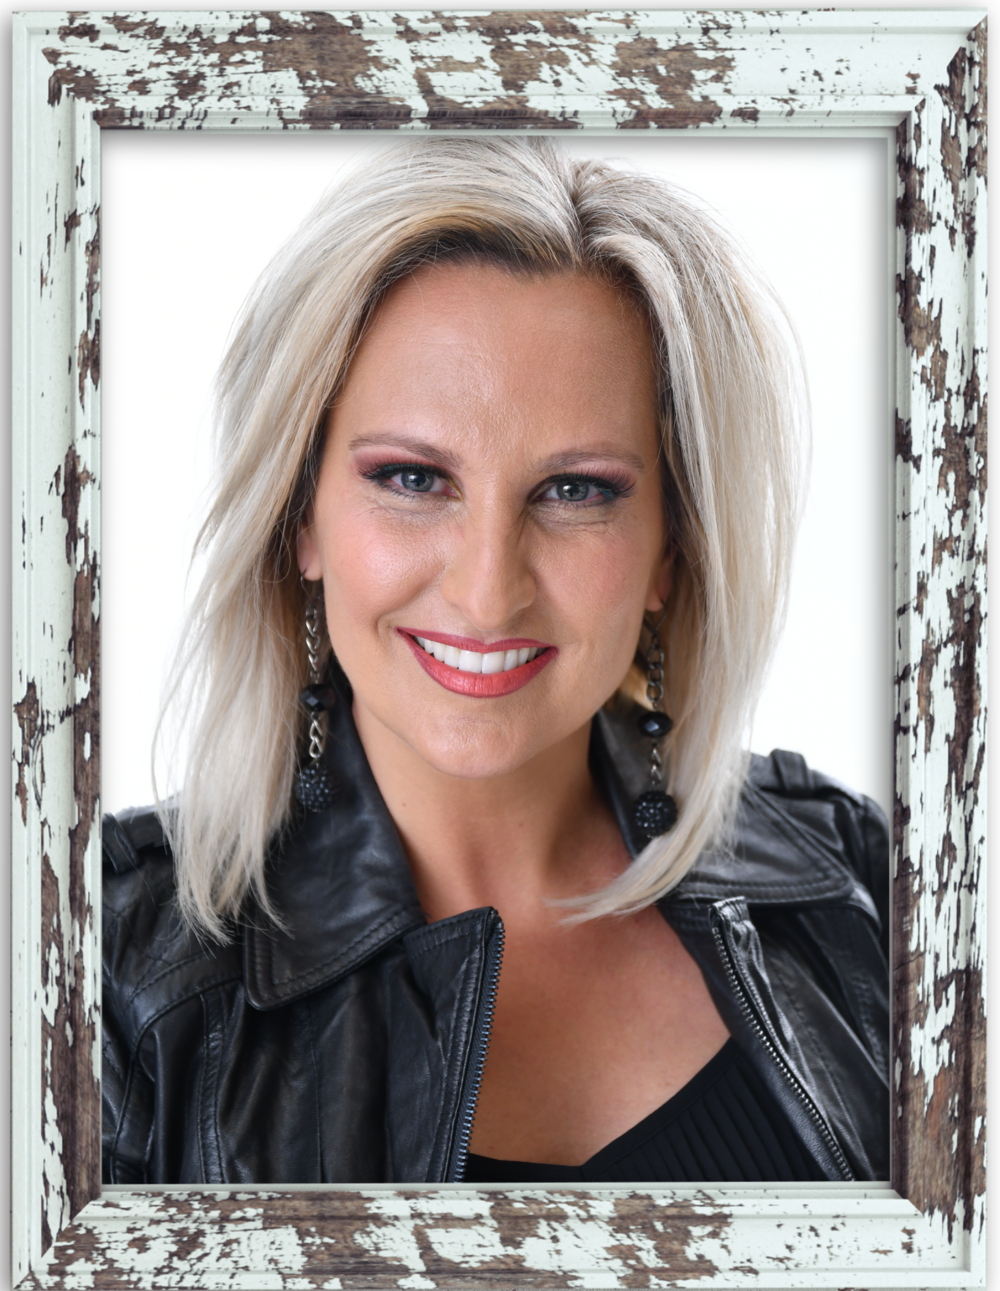 CHRISTINE MARTIN - CHRISTINE IS KNOWN FOR HER UNCOMPROMISING STYLE...POWERFUL, EDGY, GRACED & YET TENDER AS SHE SPEAKS TO MEN AND WOMEN ACROSS THE GLOBE. SHE IS PASSIONATE ABOUT EMPOWERING INDIVIDUALS TO LIVE A LIFE OF INFLUENCE AND PURPOSE. CHRISTINE RESIDES IN SUNNY ORLANDO, FLORIDA WITH HER HUSBAND, DAVE AND SON, SOLOMON.